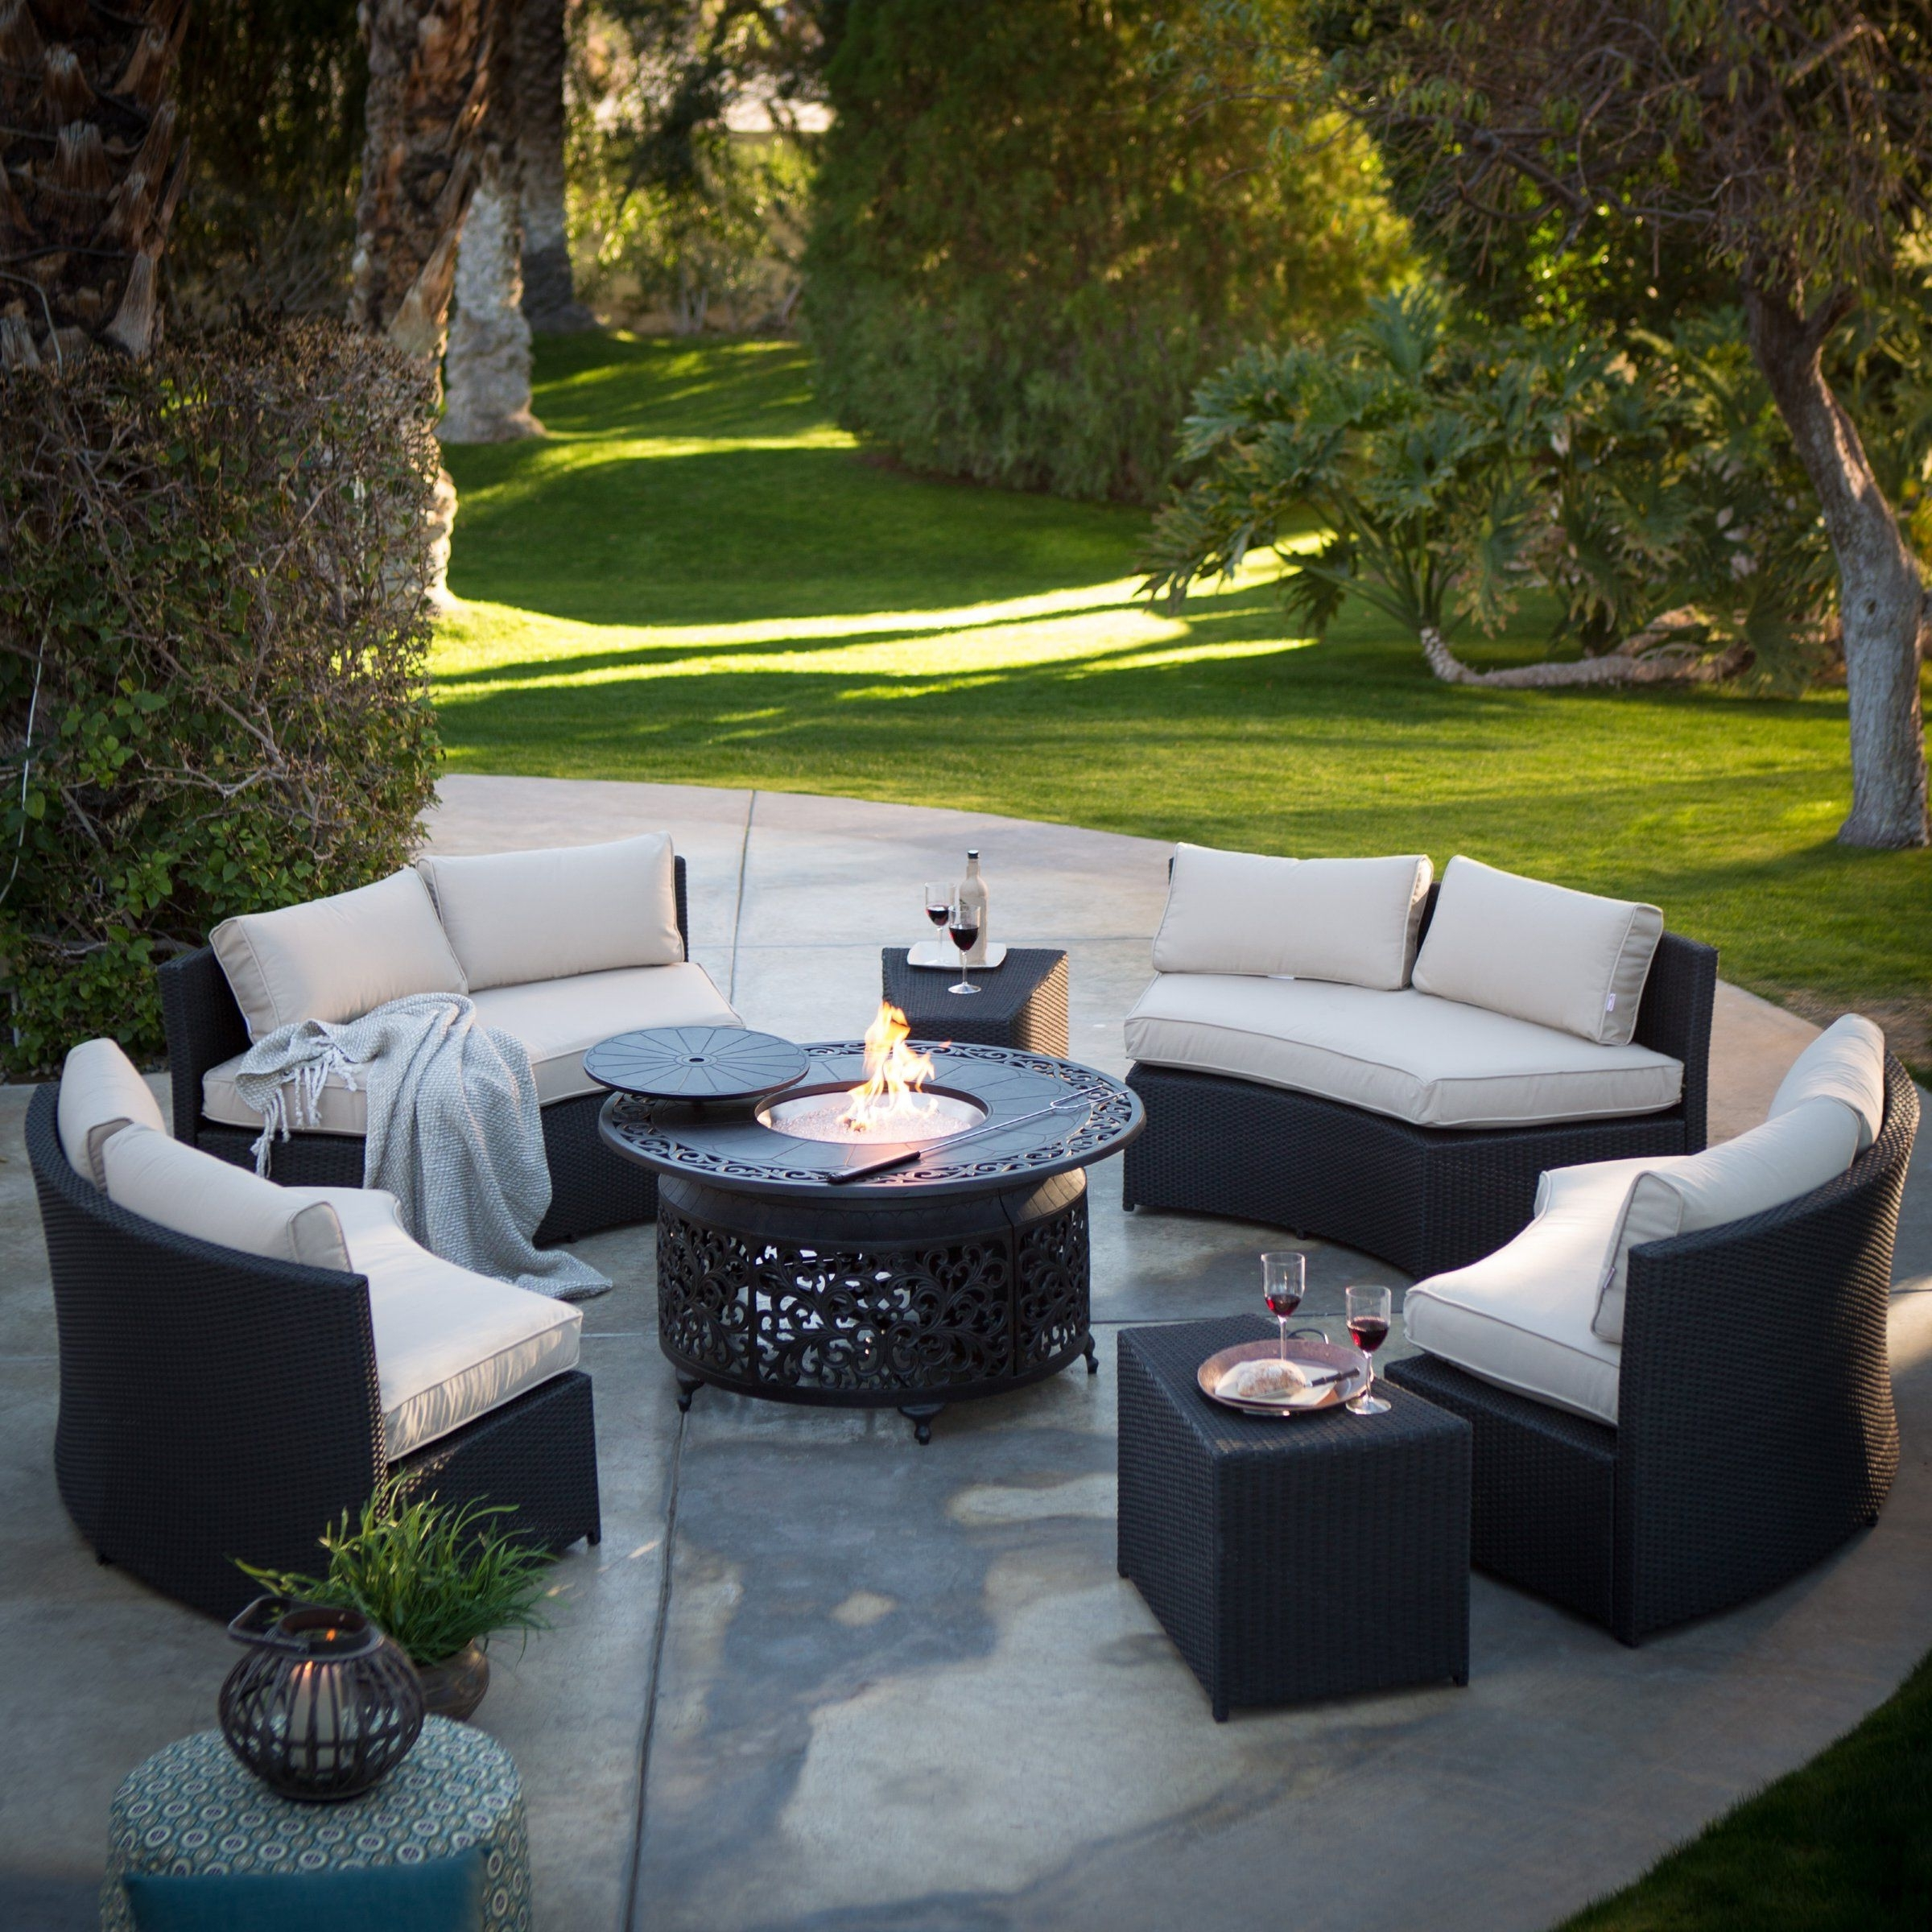 Patio Conversation Sets With Fire Pit Intended For Newest Radiate Warm Fun With Friends And Family Whenever You Gather! This (View 1 of 20)